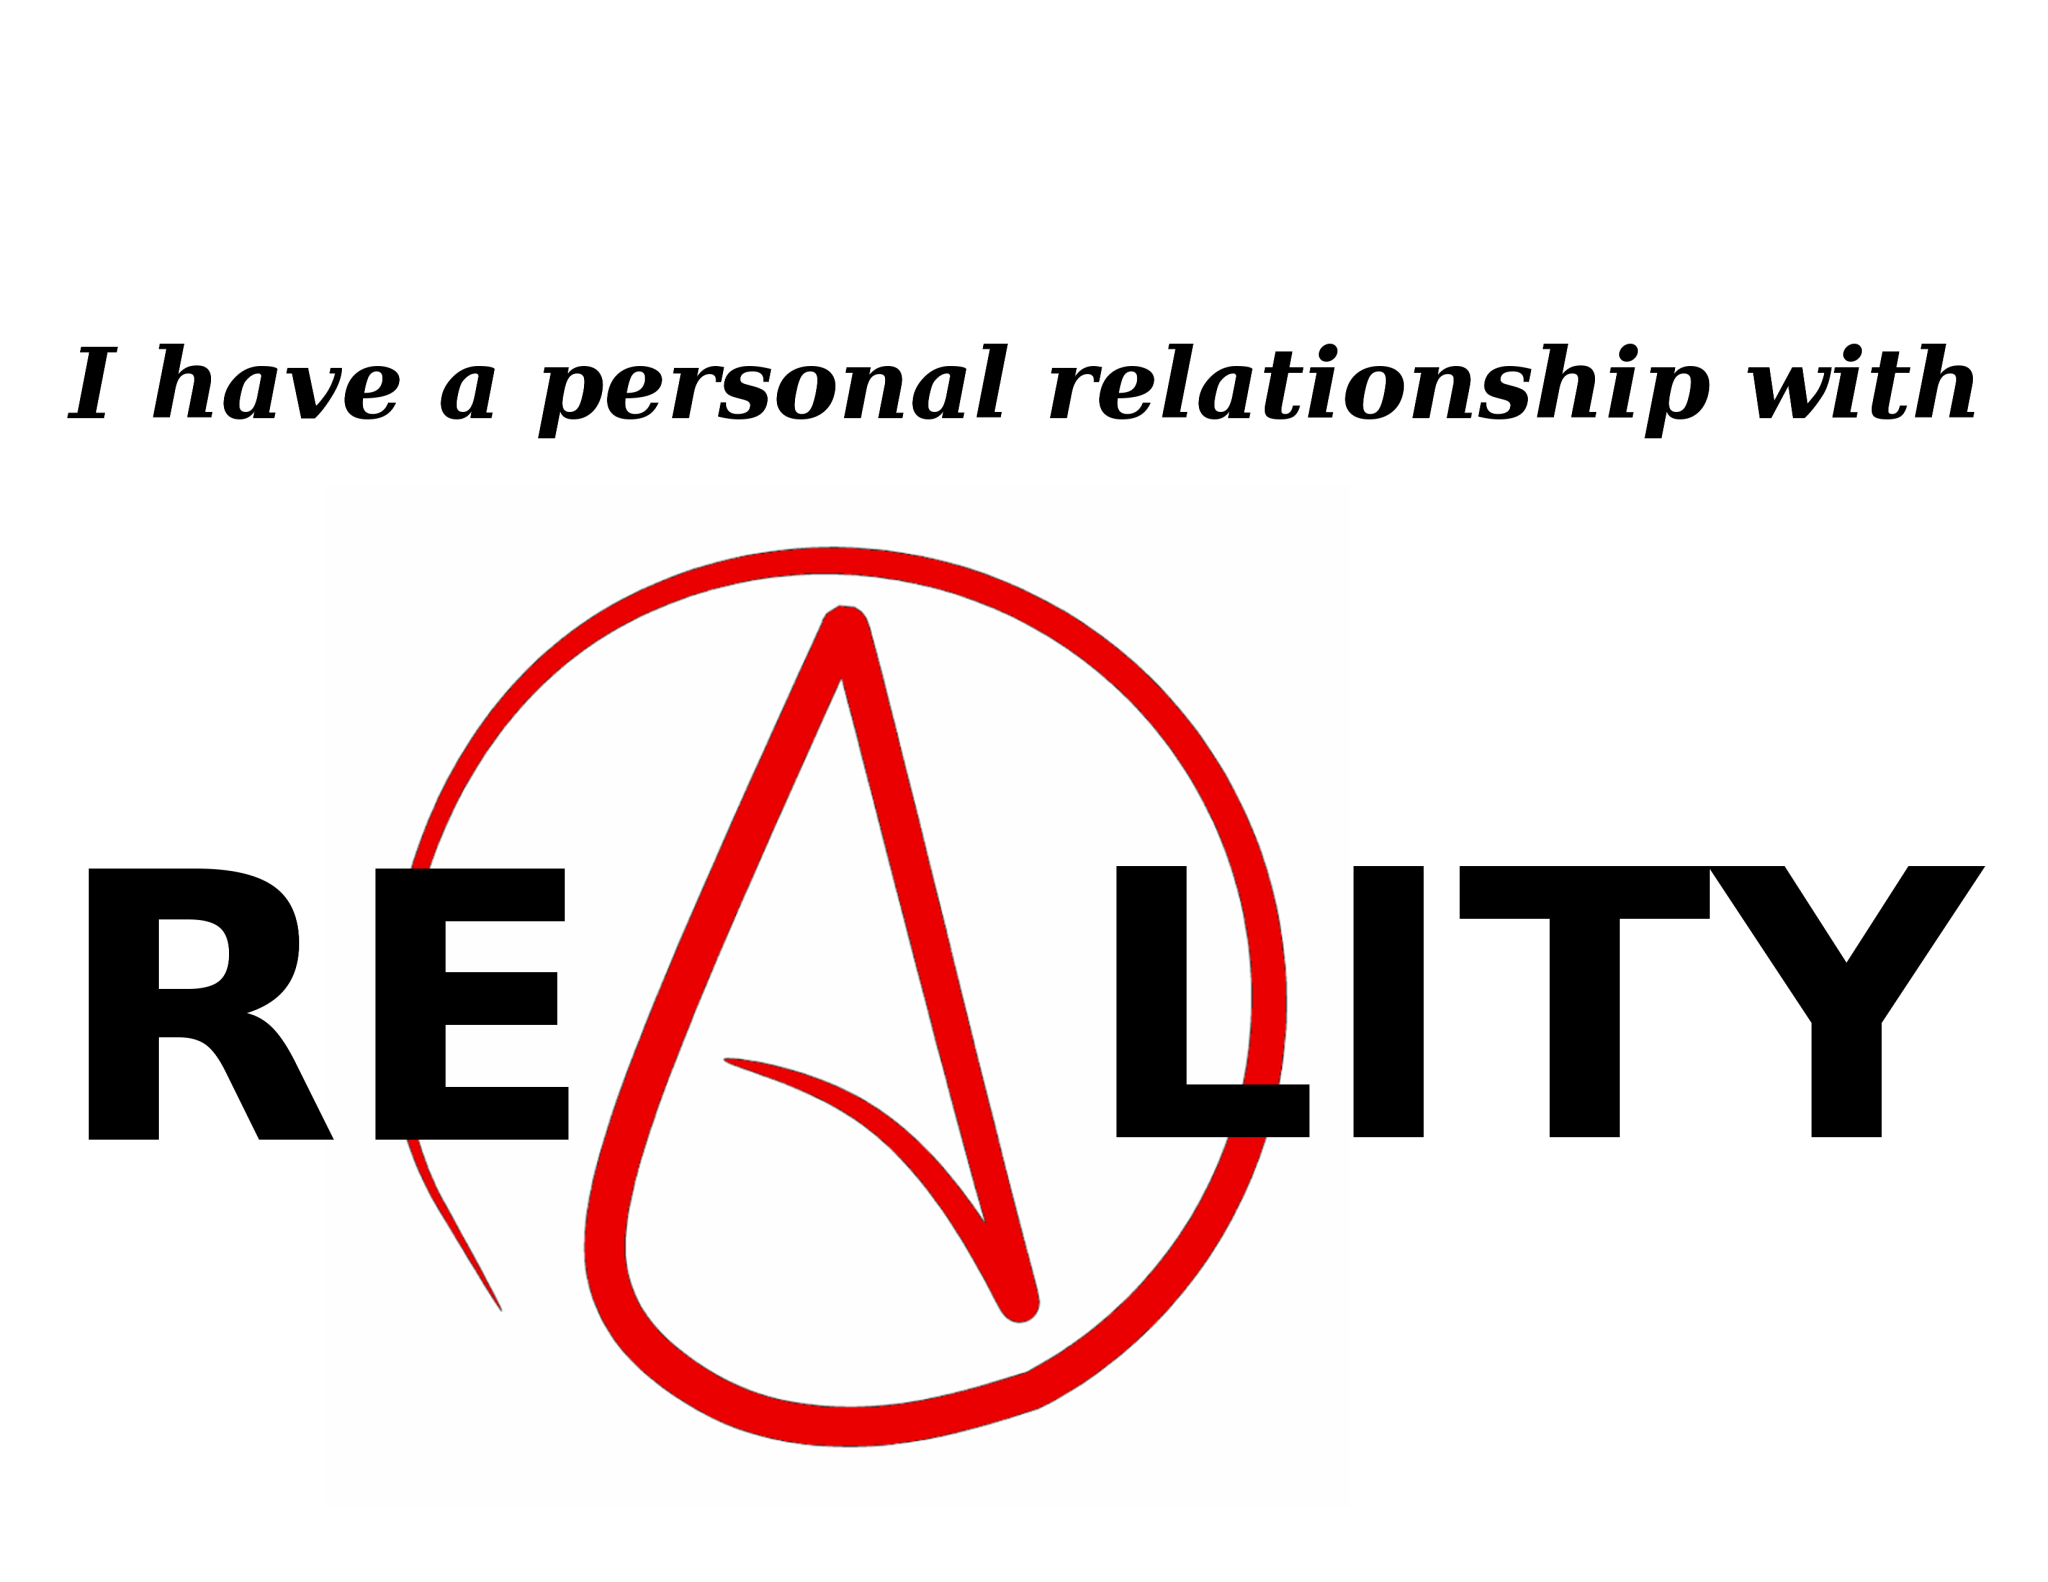 I have a personal relationship with reality tee (with Atheist Symbol)